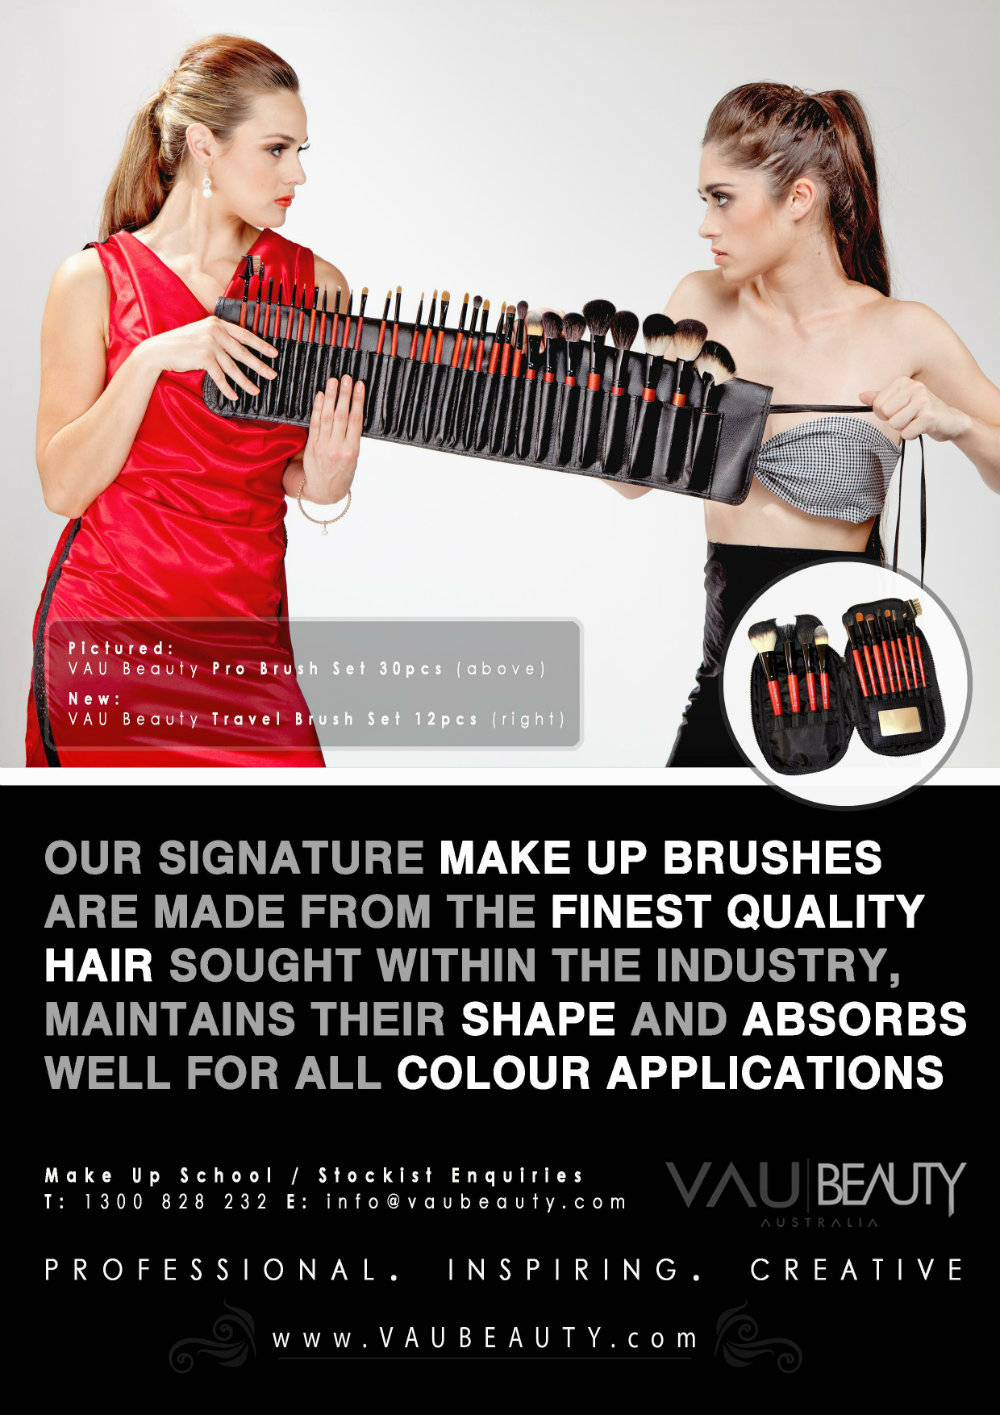 make-up-brush-30pcs-low-res.jpg